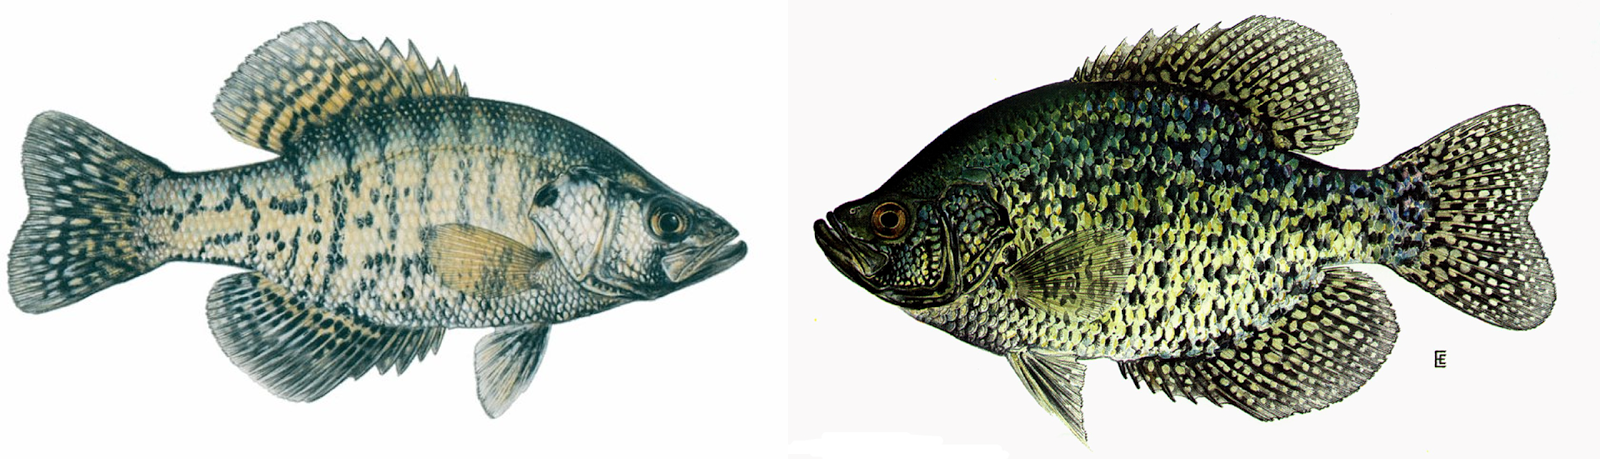 Illustrations Of The White Crappie Left And Black Right